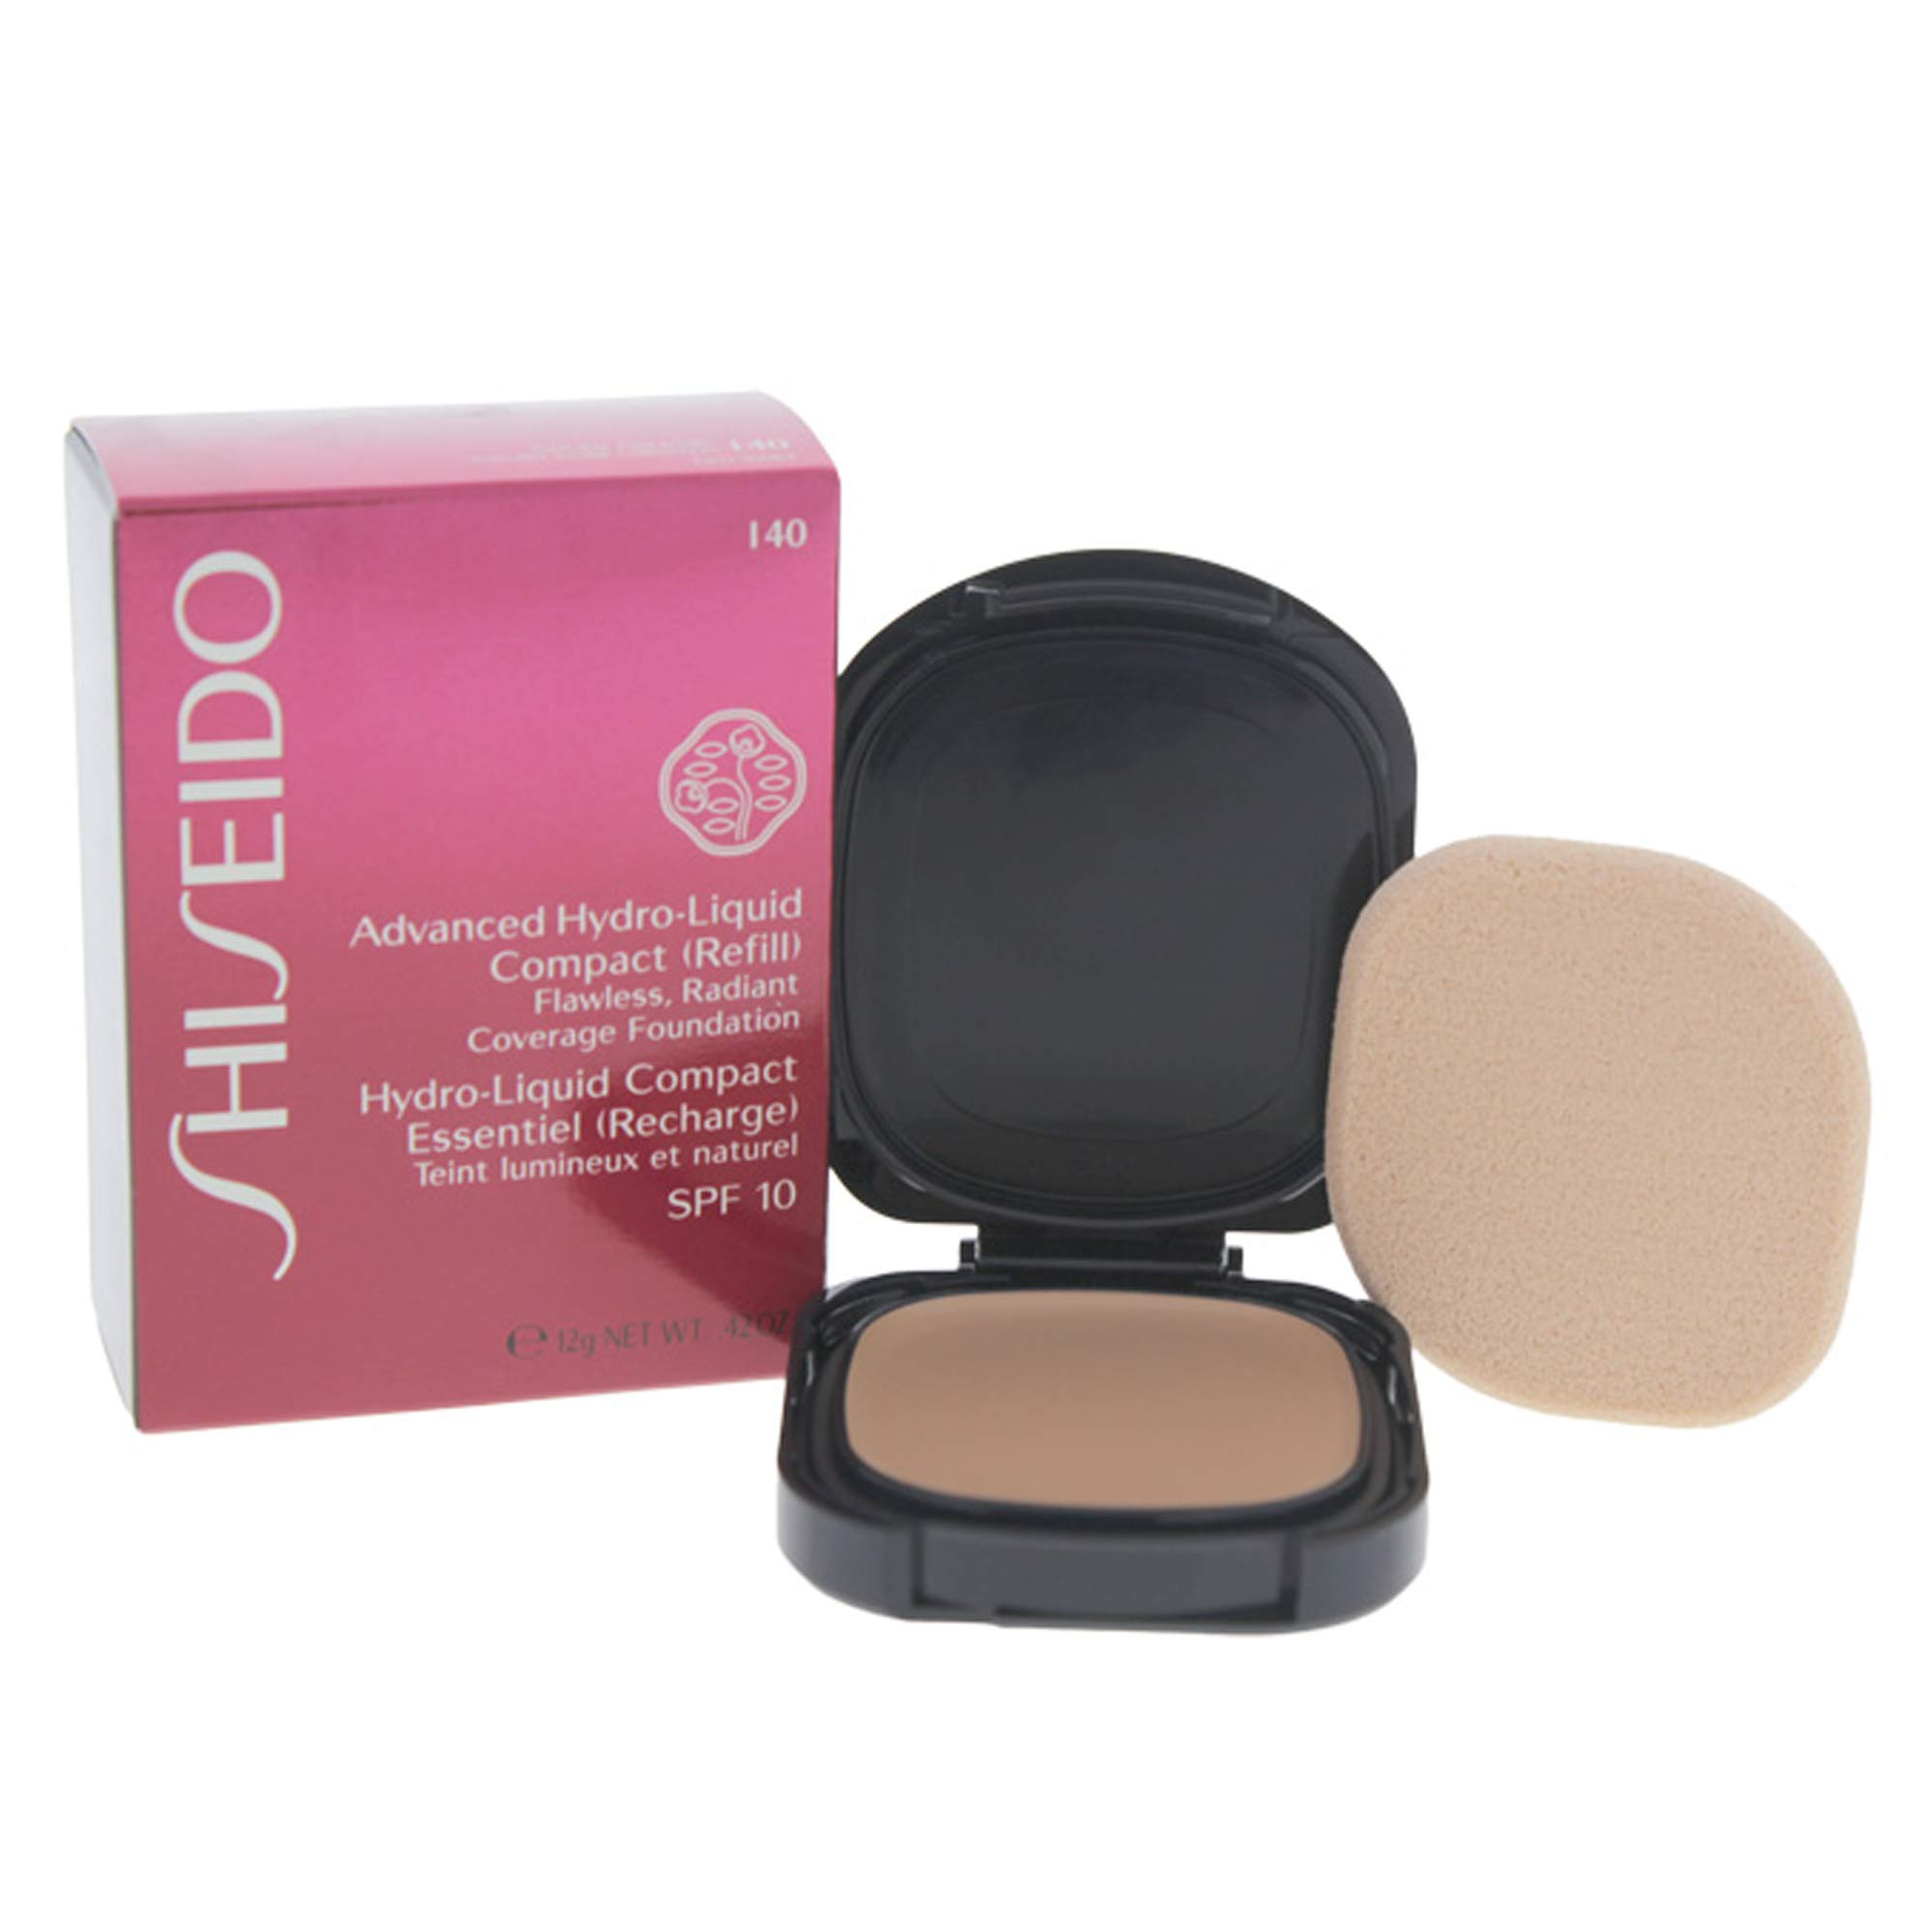 624128e30 Shiseido SPF 15 Advanced Hydro-Liquid Compact Refill, I40/Natural Fair  Ivory,